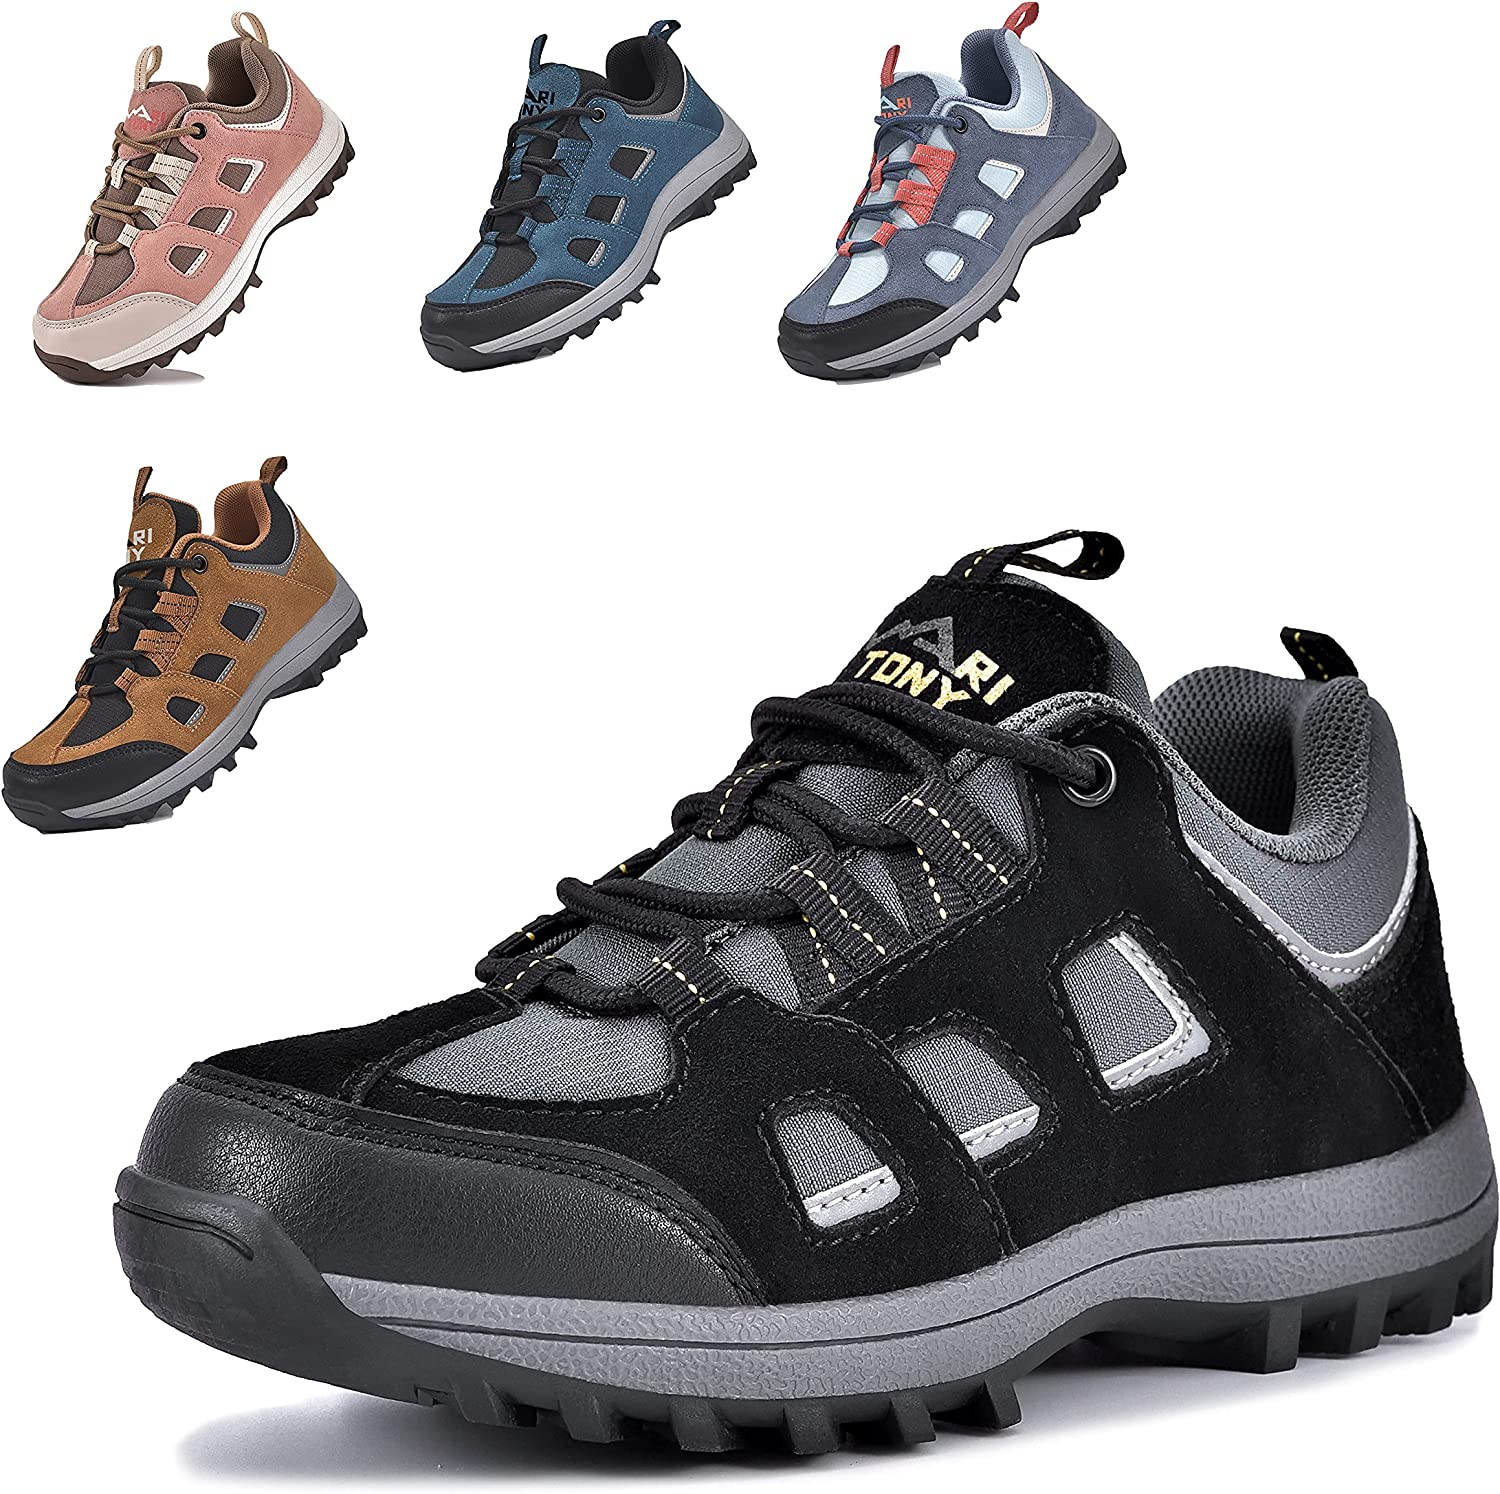 MARITONY Unisex-Child Special sale item Hiking Shoes Max 70% OFF for Boys Girls Sneakers Kids